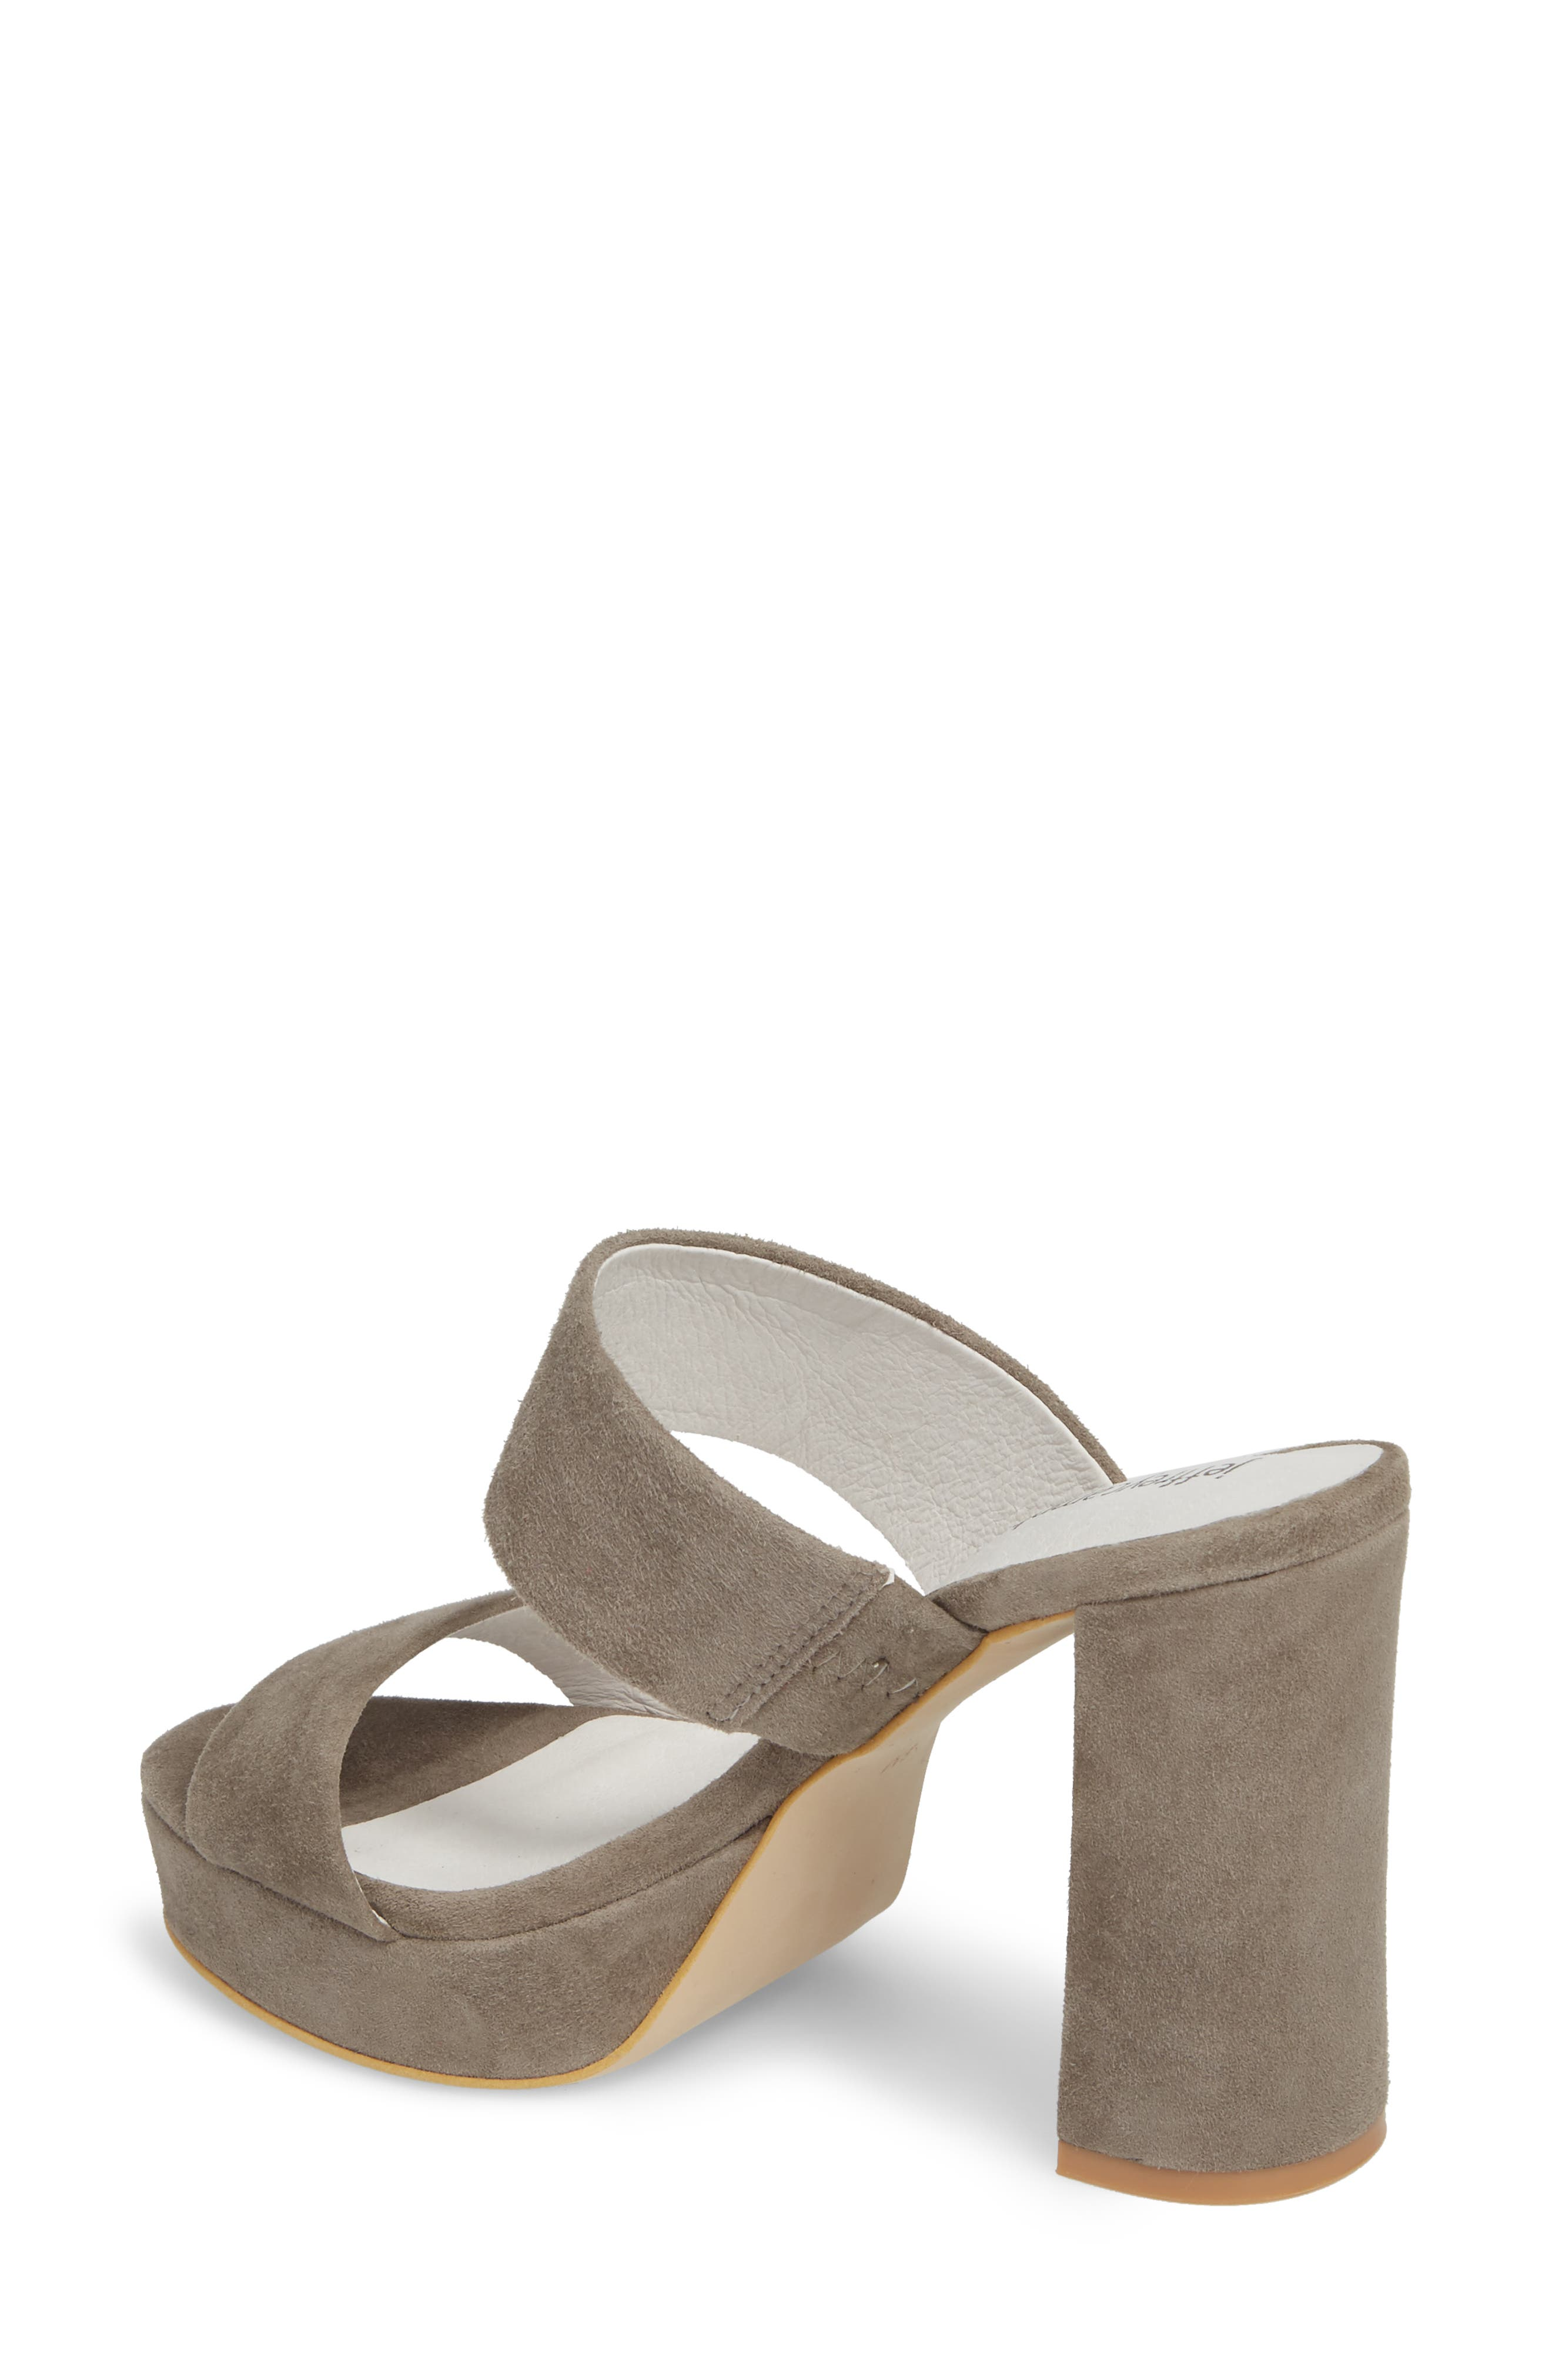 Adriana Double Band Platform Sandal,                             Alternate thumbnail 2, color,                             Grey Suede